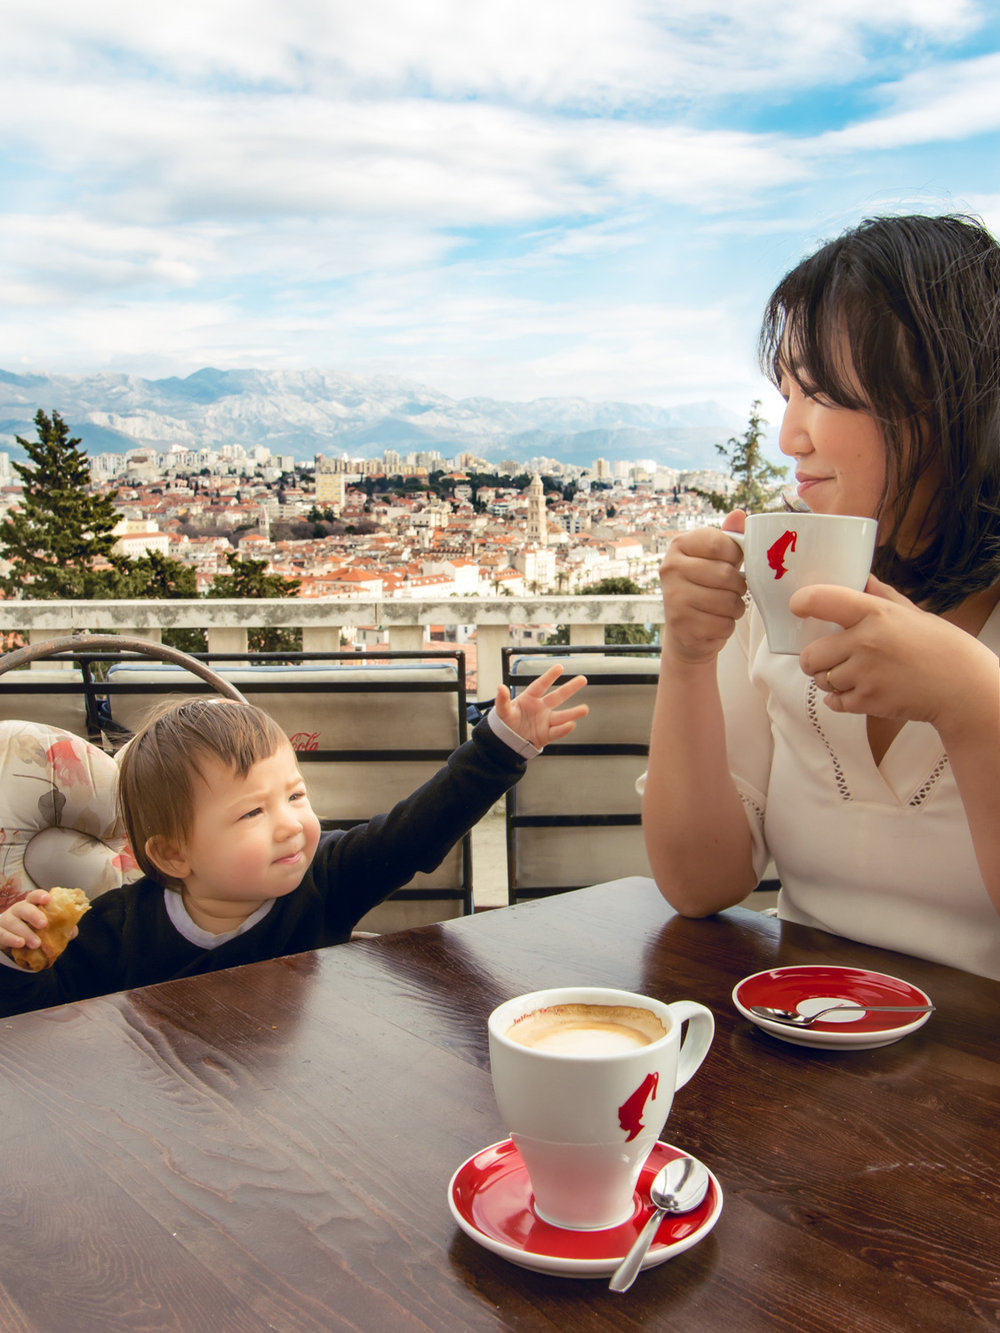 """Sharing"" some hot chocolate at Vidilica Cafe, with Split, Croatia in the background."